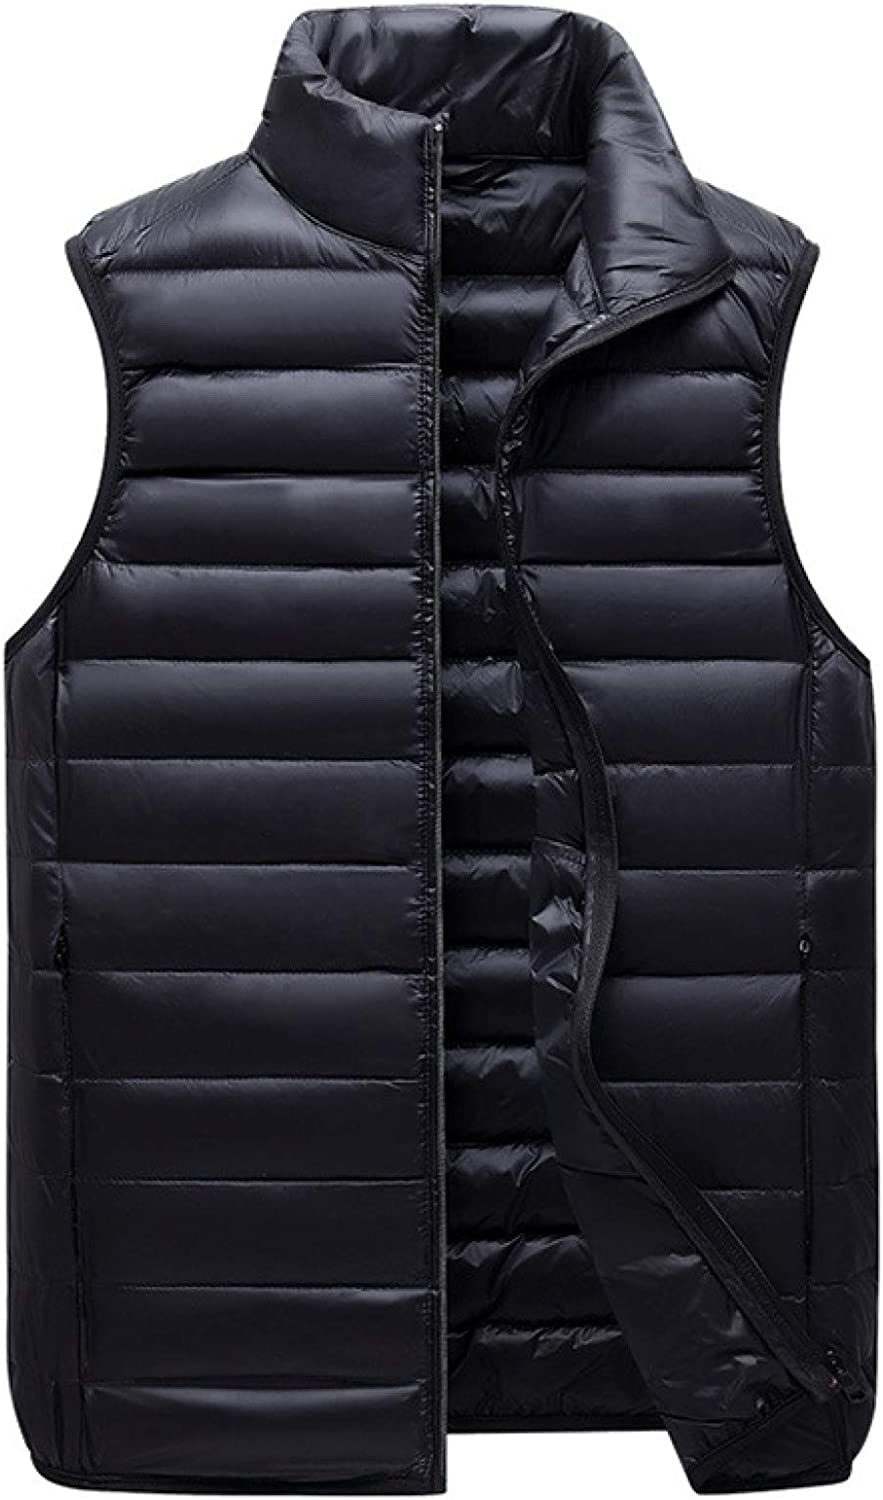 Mens Full Zip Puffer Vest Polyester Stand Collar Side Pockets Waistcoat Outdoor Sports Sleeveless Jackets Gilet